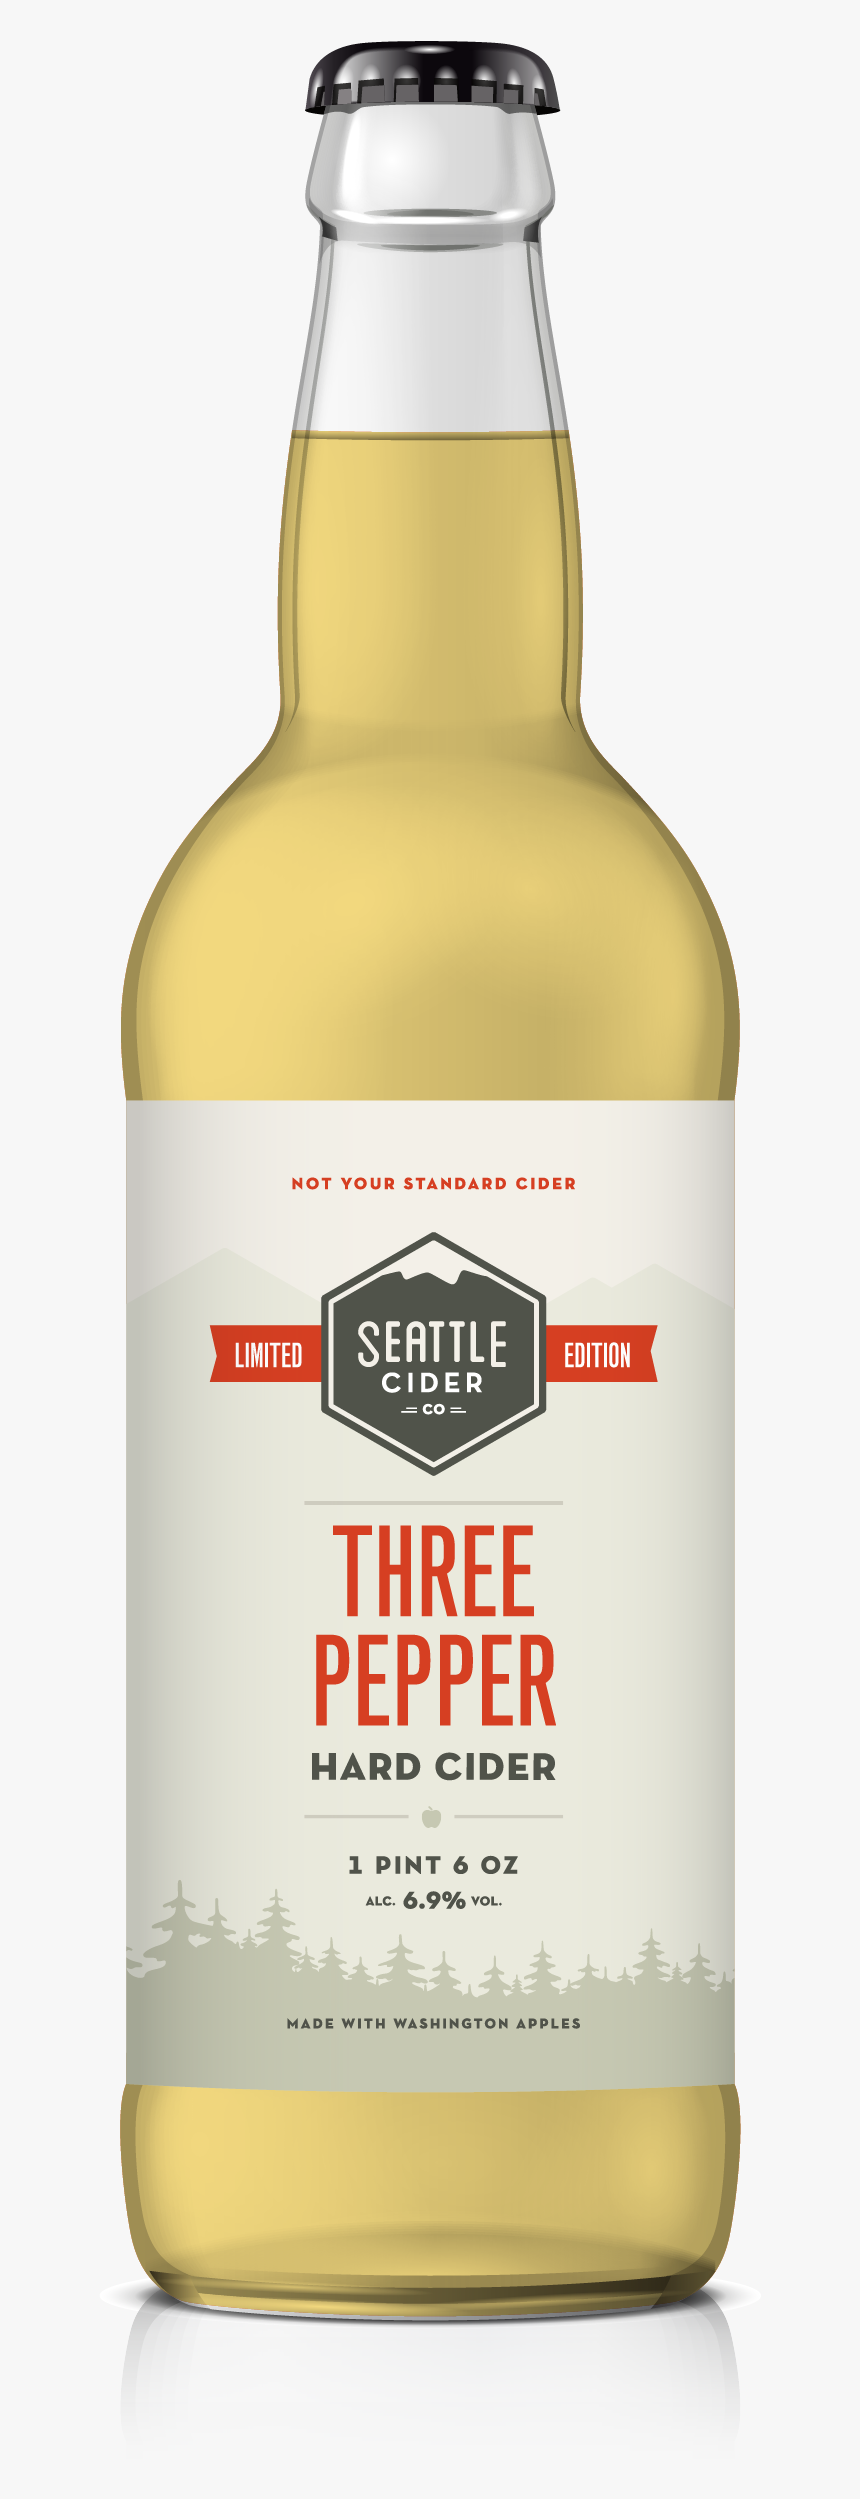 Seattle Cider, HD Png Download, Free Download